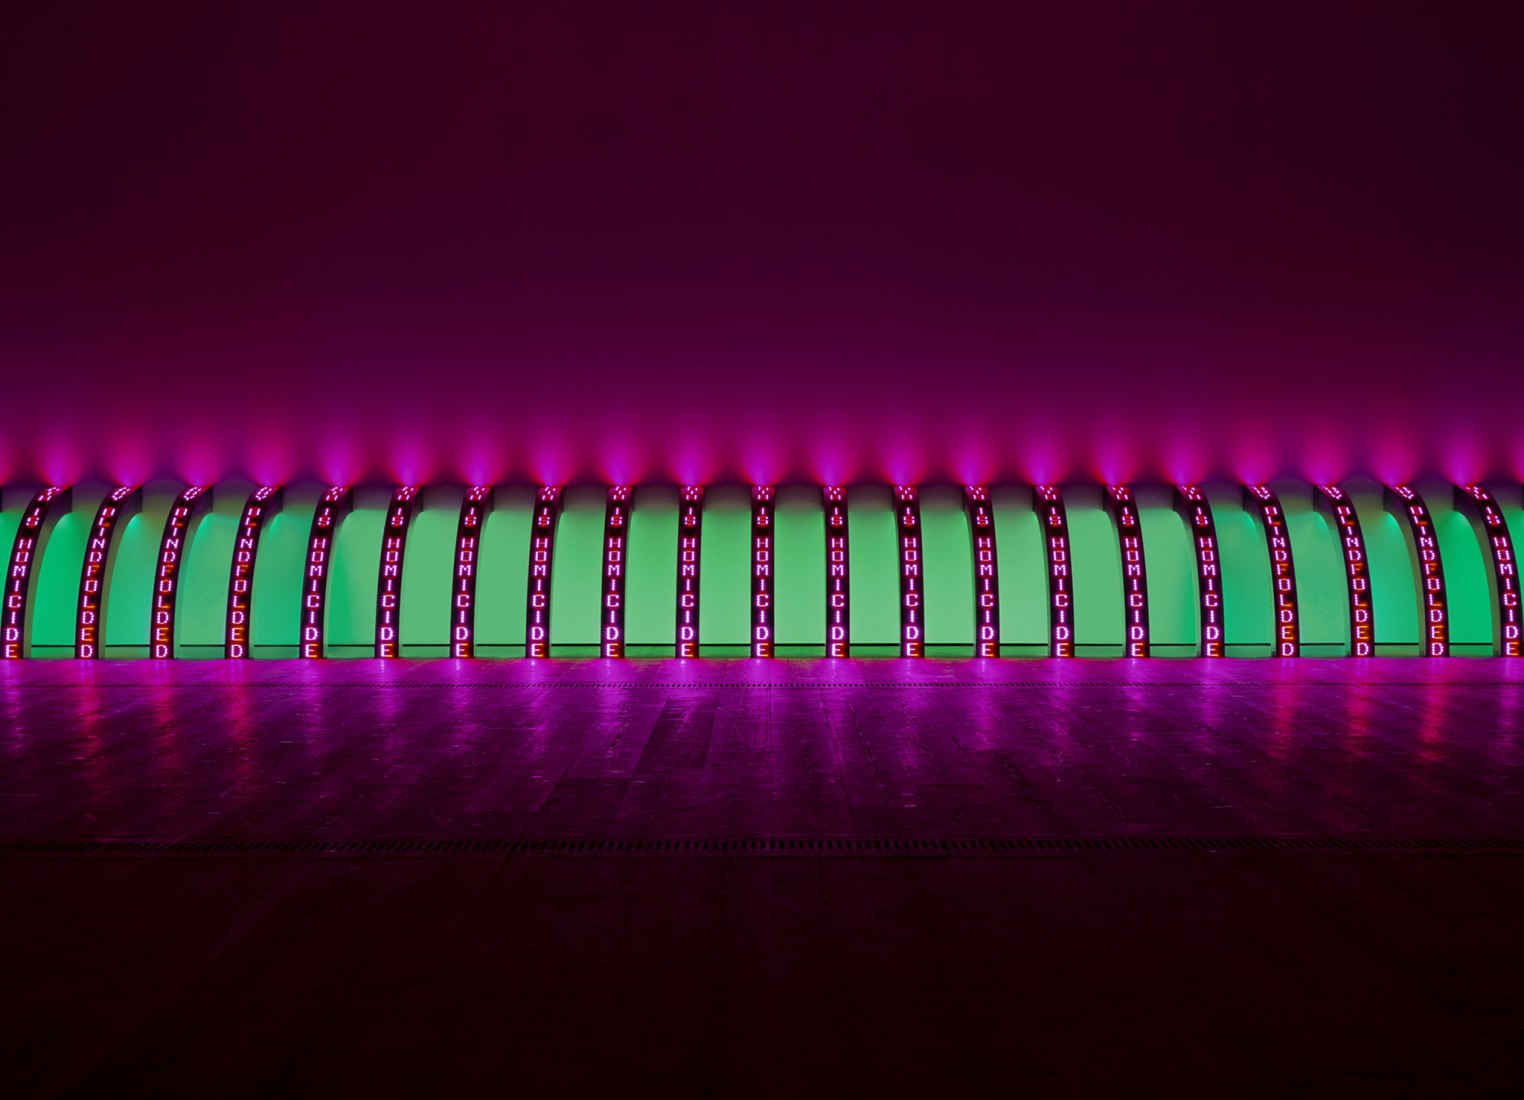 Jenny Holzer. Purple, 2008. 20 LED signs with blue, green, red & white diodes. Each element: 148.1 x 13.3 x 14.8 cm. Text: U.S. government documents. Courtesy the artist © 2019 Jenny Holzer, member Artists Rights Society (ARS), NY / VEGAP. Photograph by Collin LaFleche.